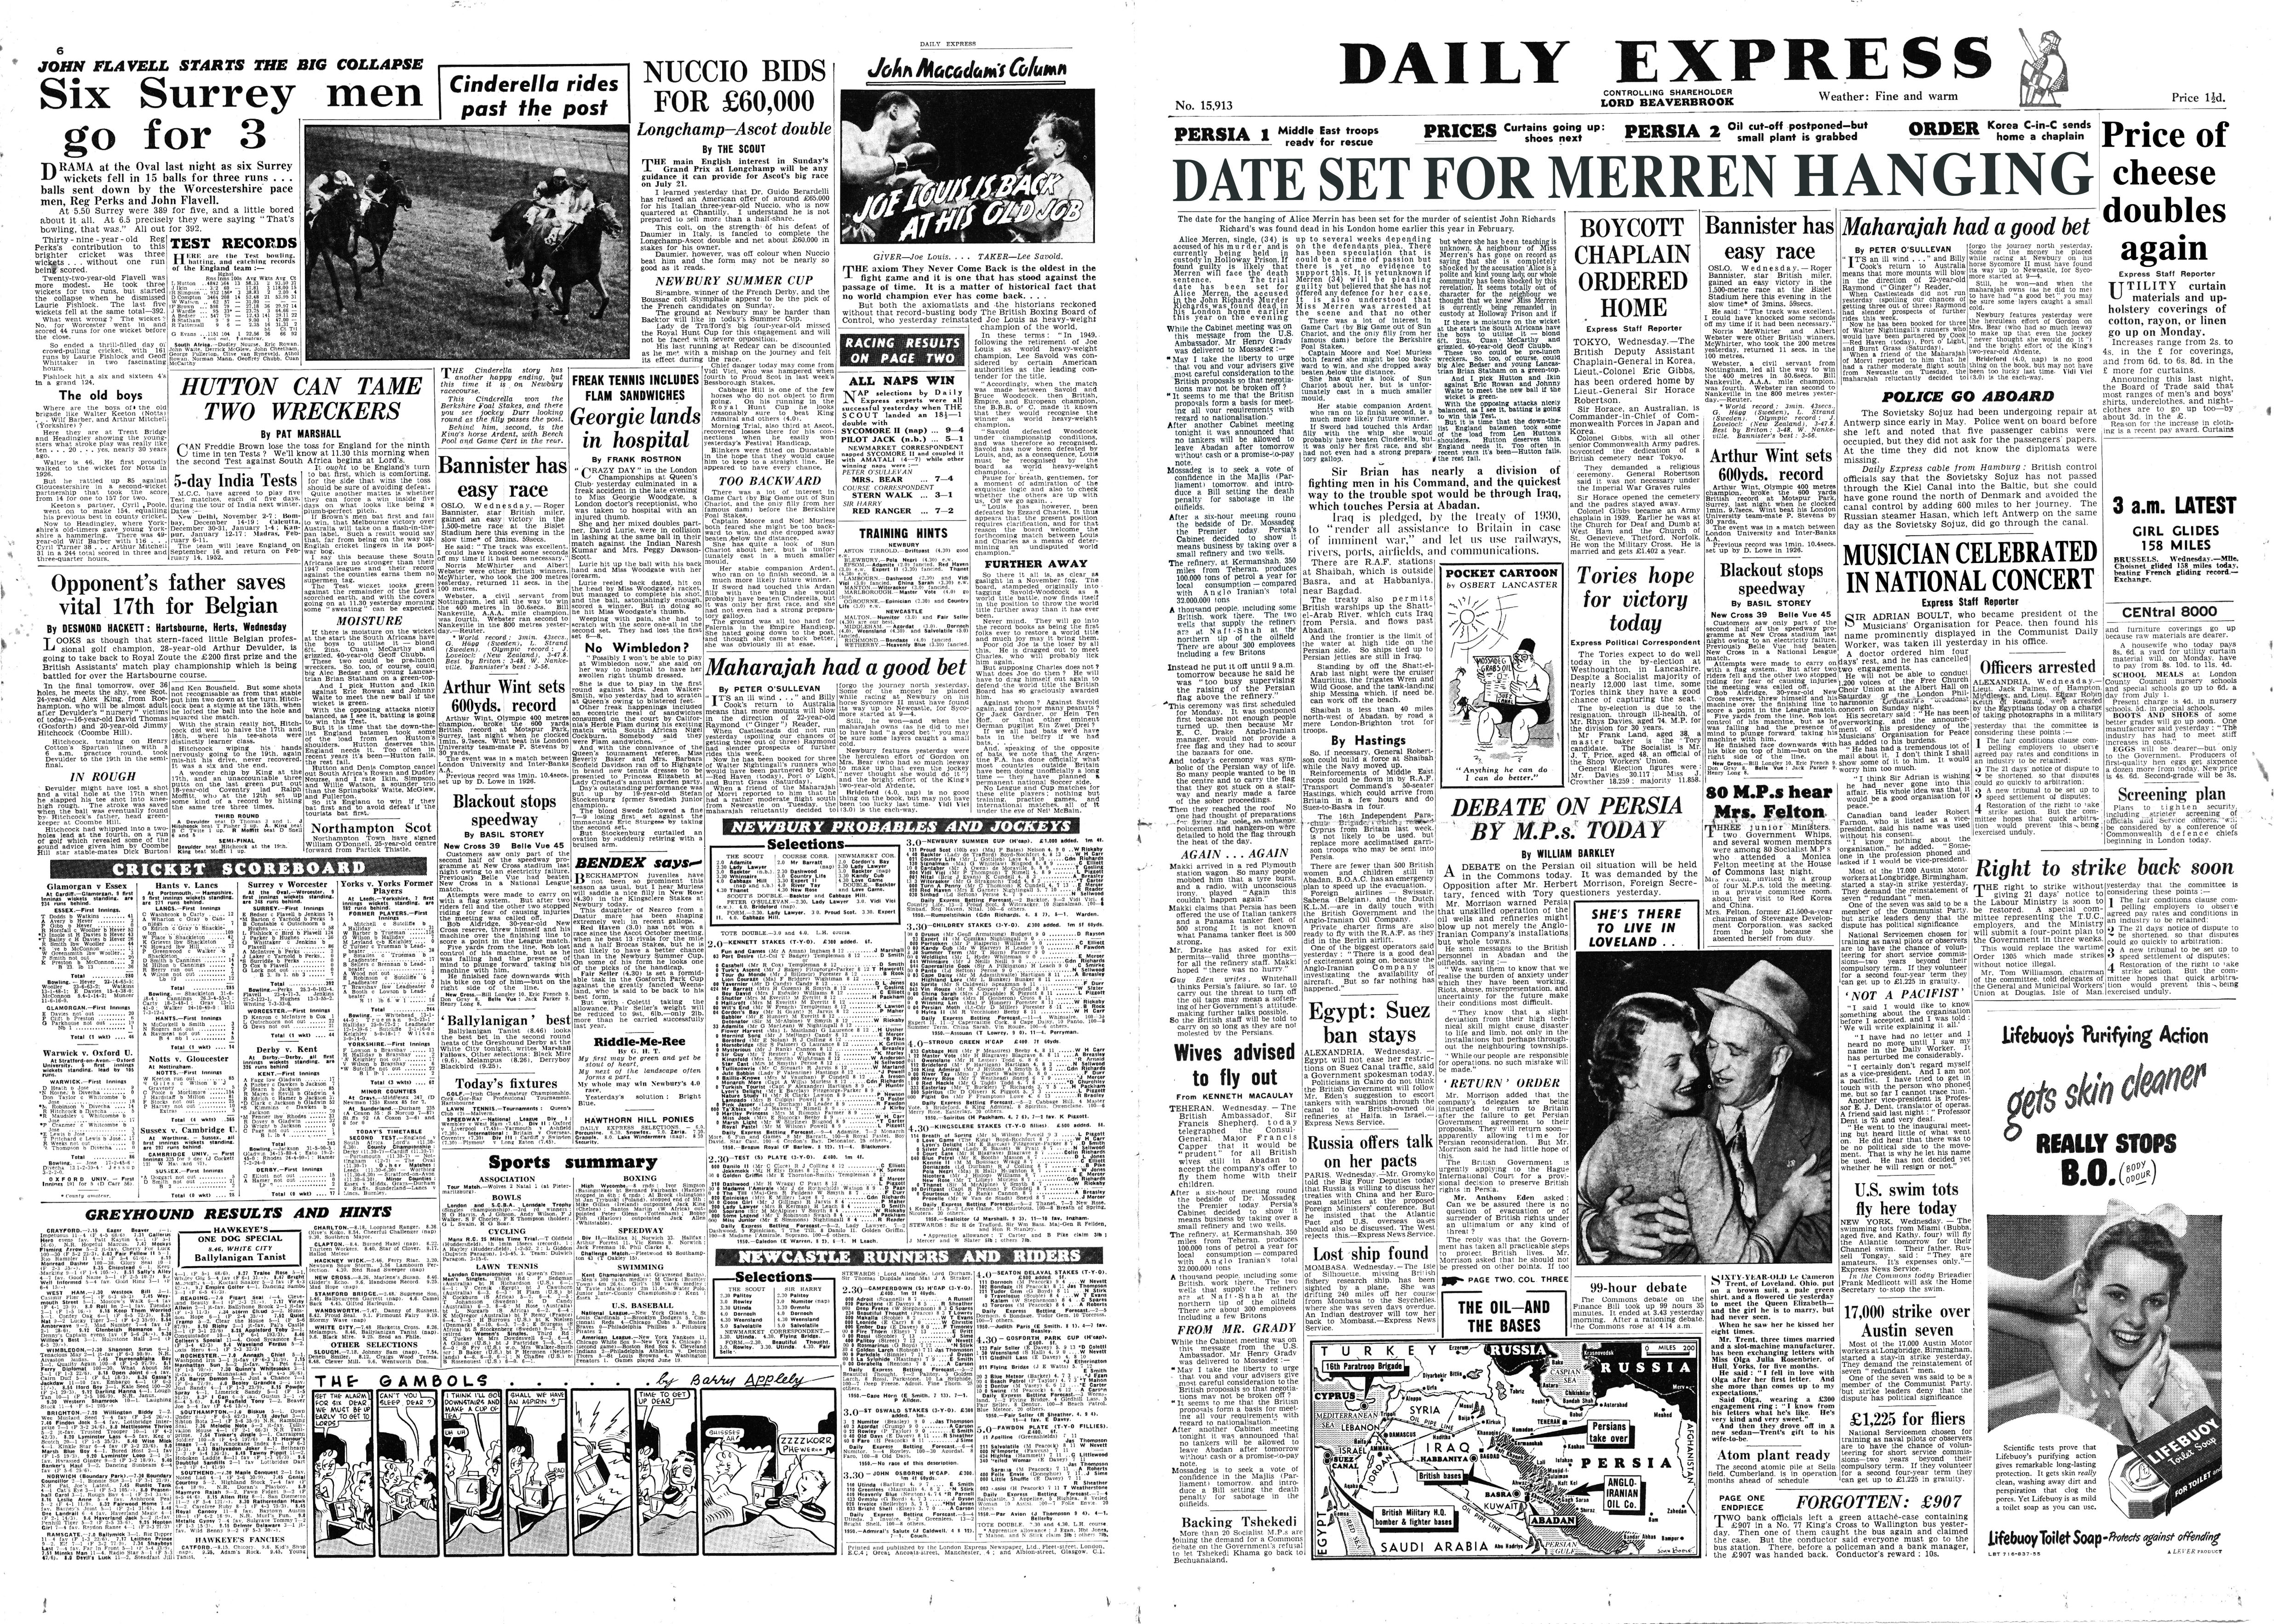 The Daily Express - Period Newspaper - 1953.jpg